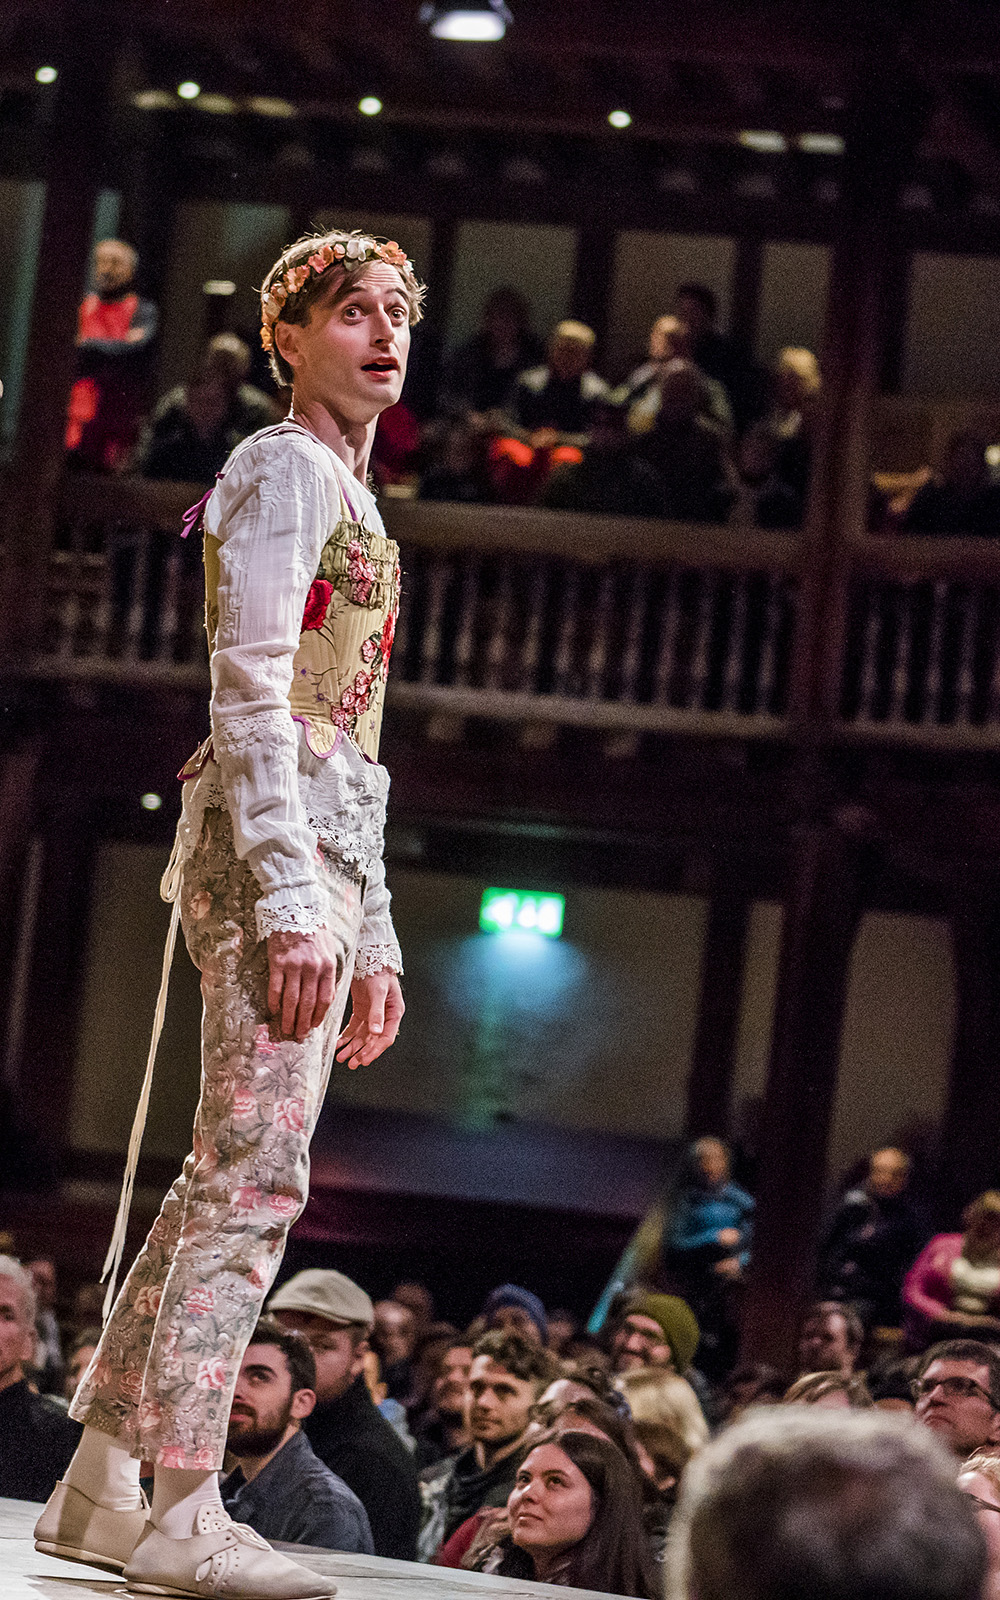 An actor wearing floral embroidered trousers and corset, over a white undershirt, looks over their shoulder, as audiences watch on.